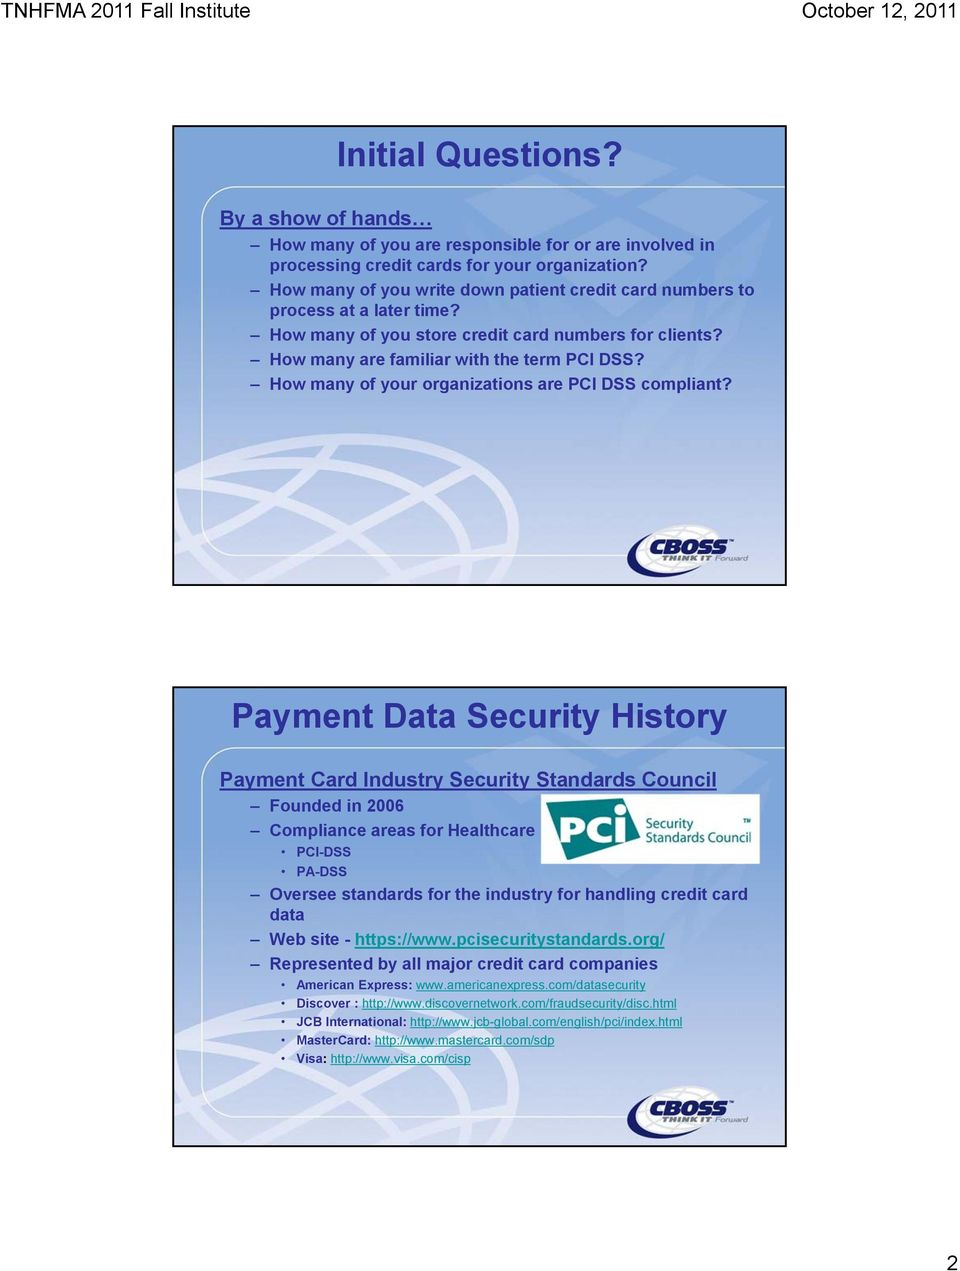 How many of your organizations are PCI DSS compliant?